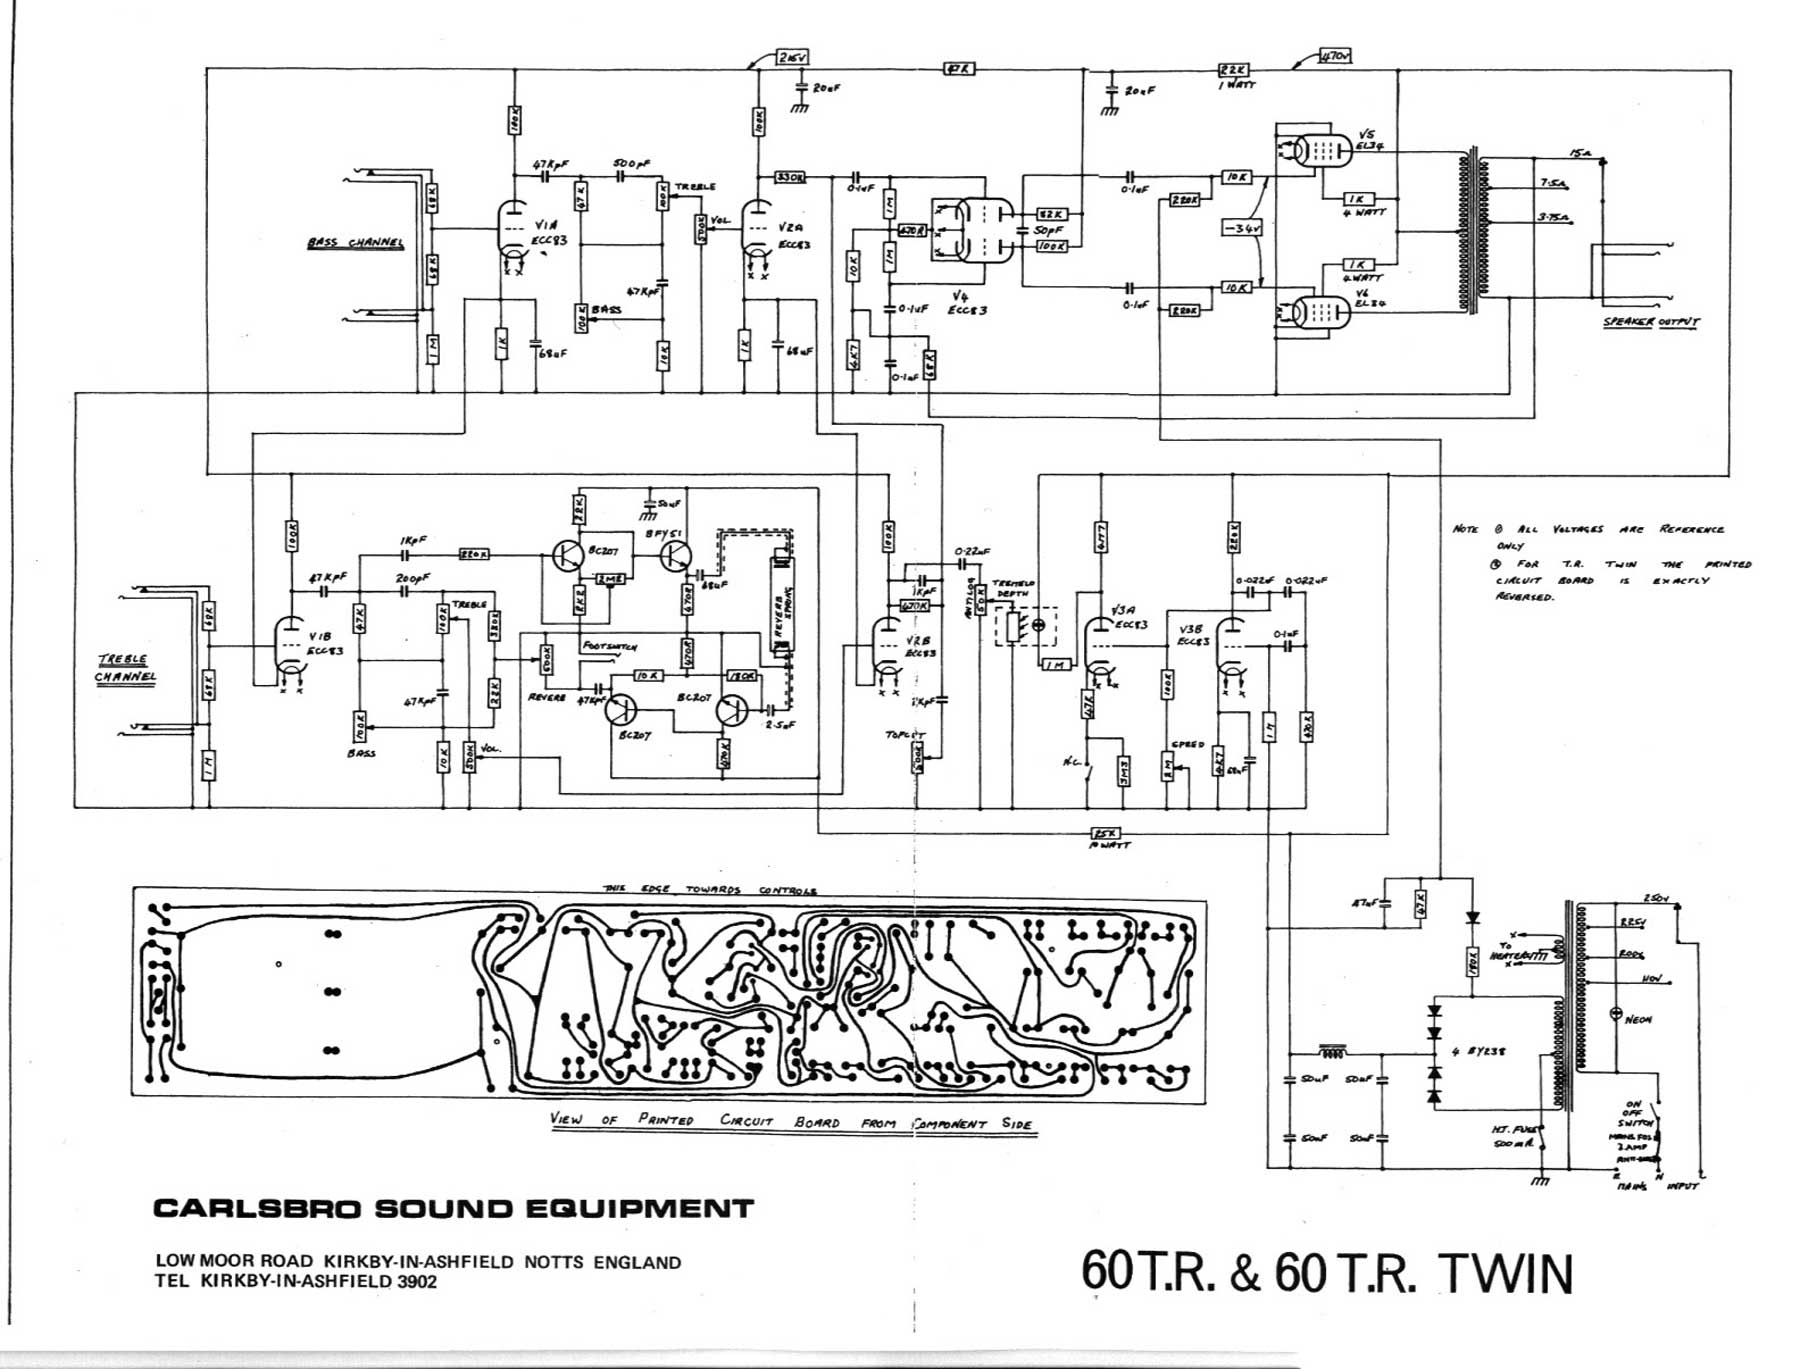 Pa Intercom Wiring Diagram Carlsbro 60 T R And 60 T R Twin Amp Schematic